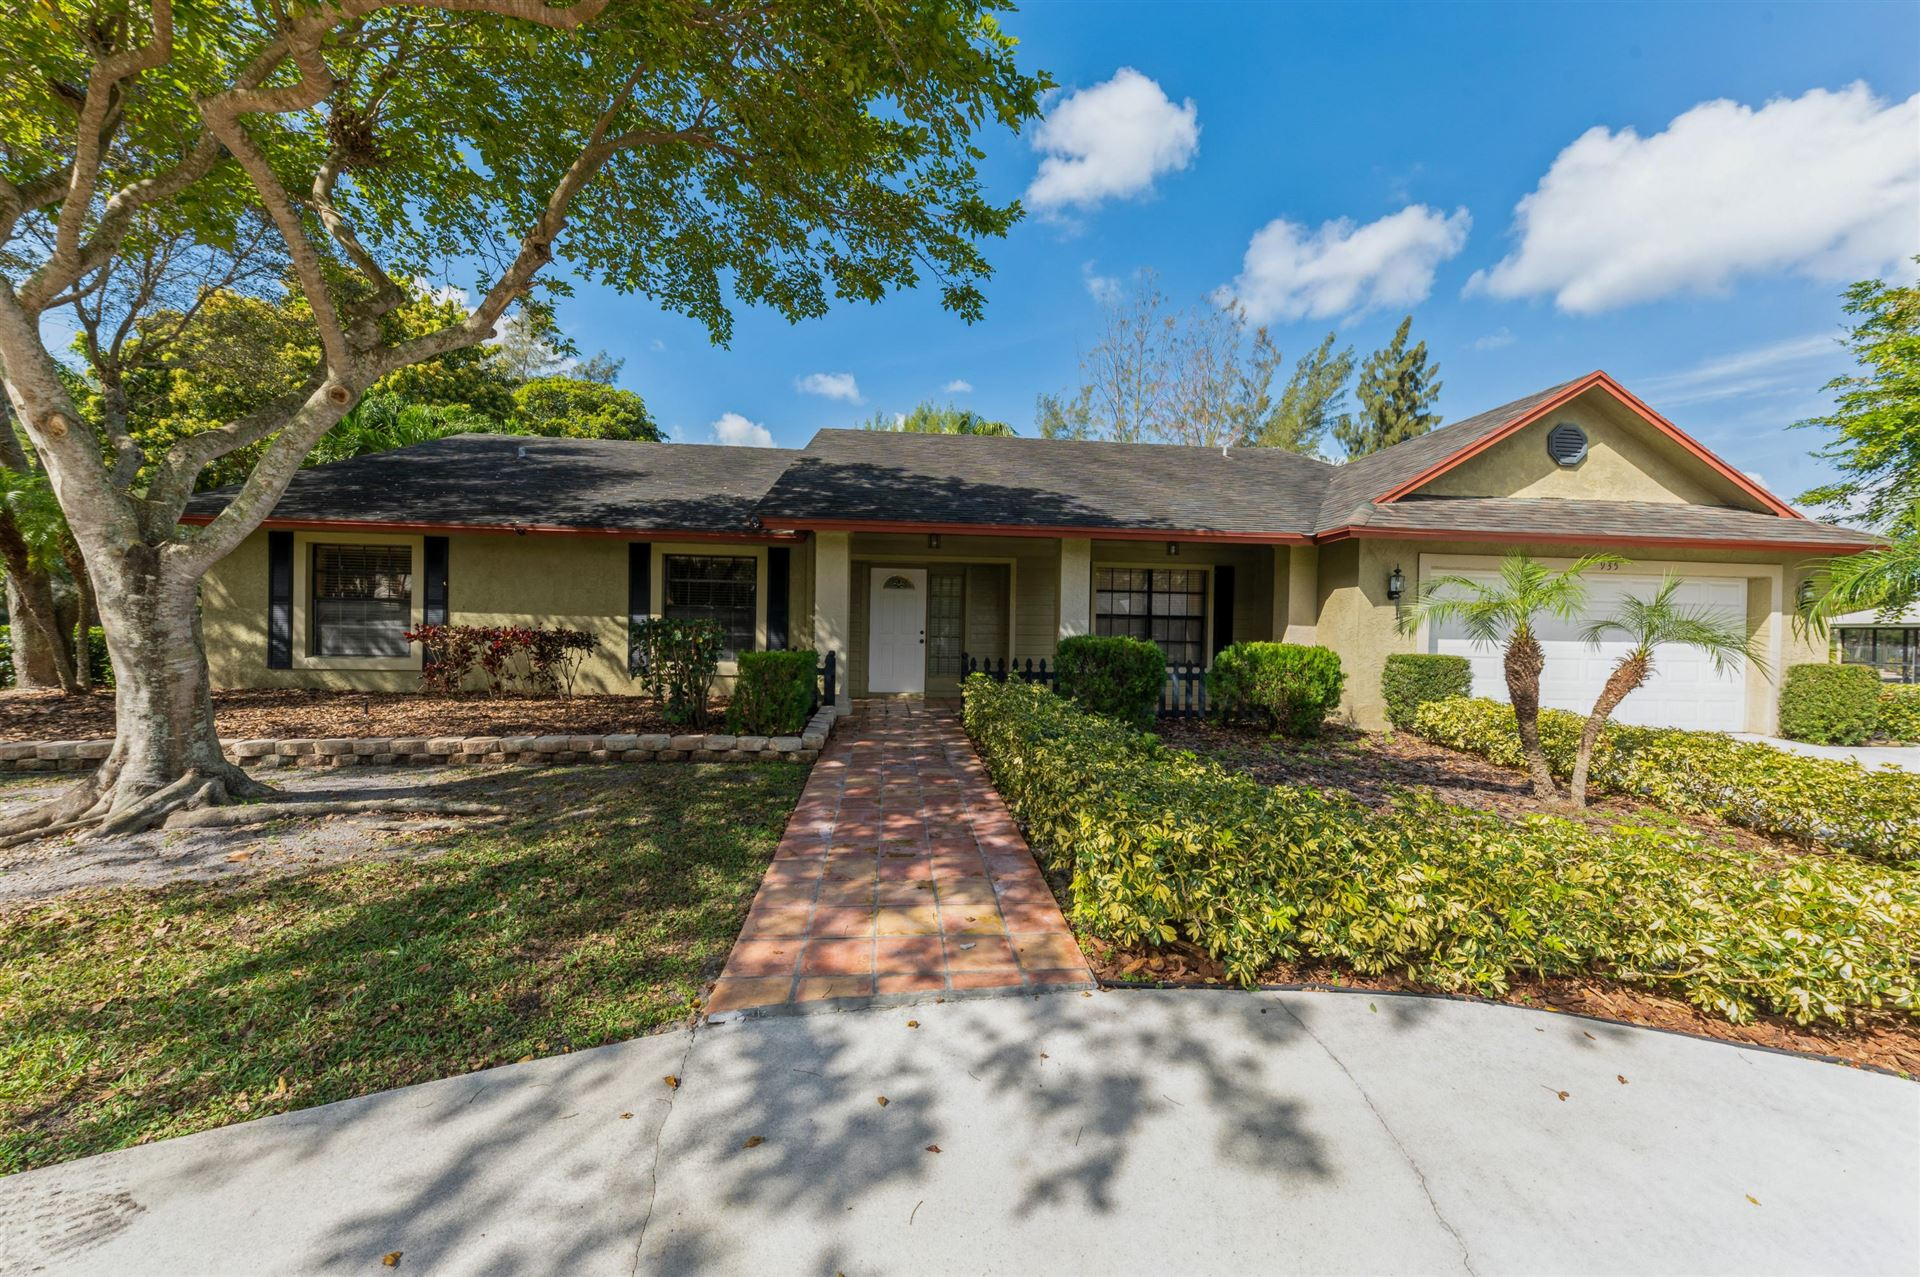 935 Whippoorwill Row, West Palm Beach, FL 33411 - MLS#: RX-10689118